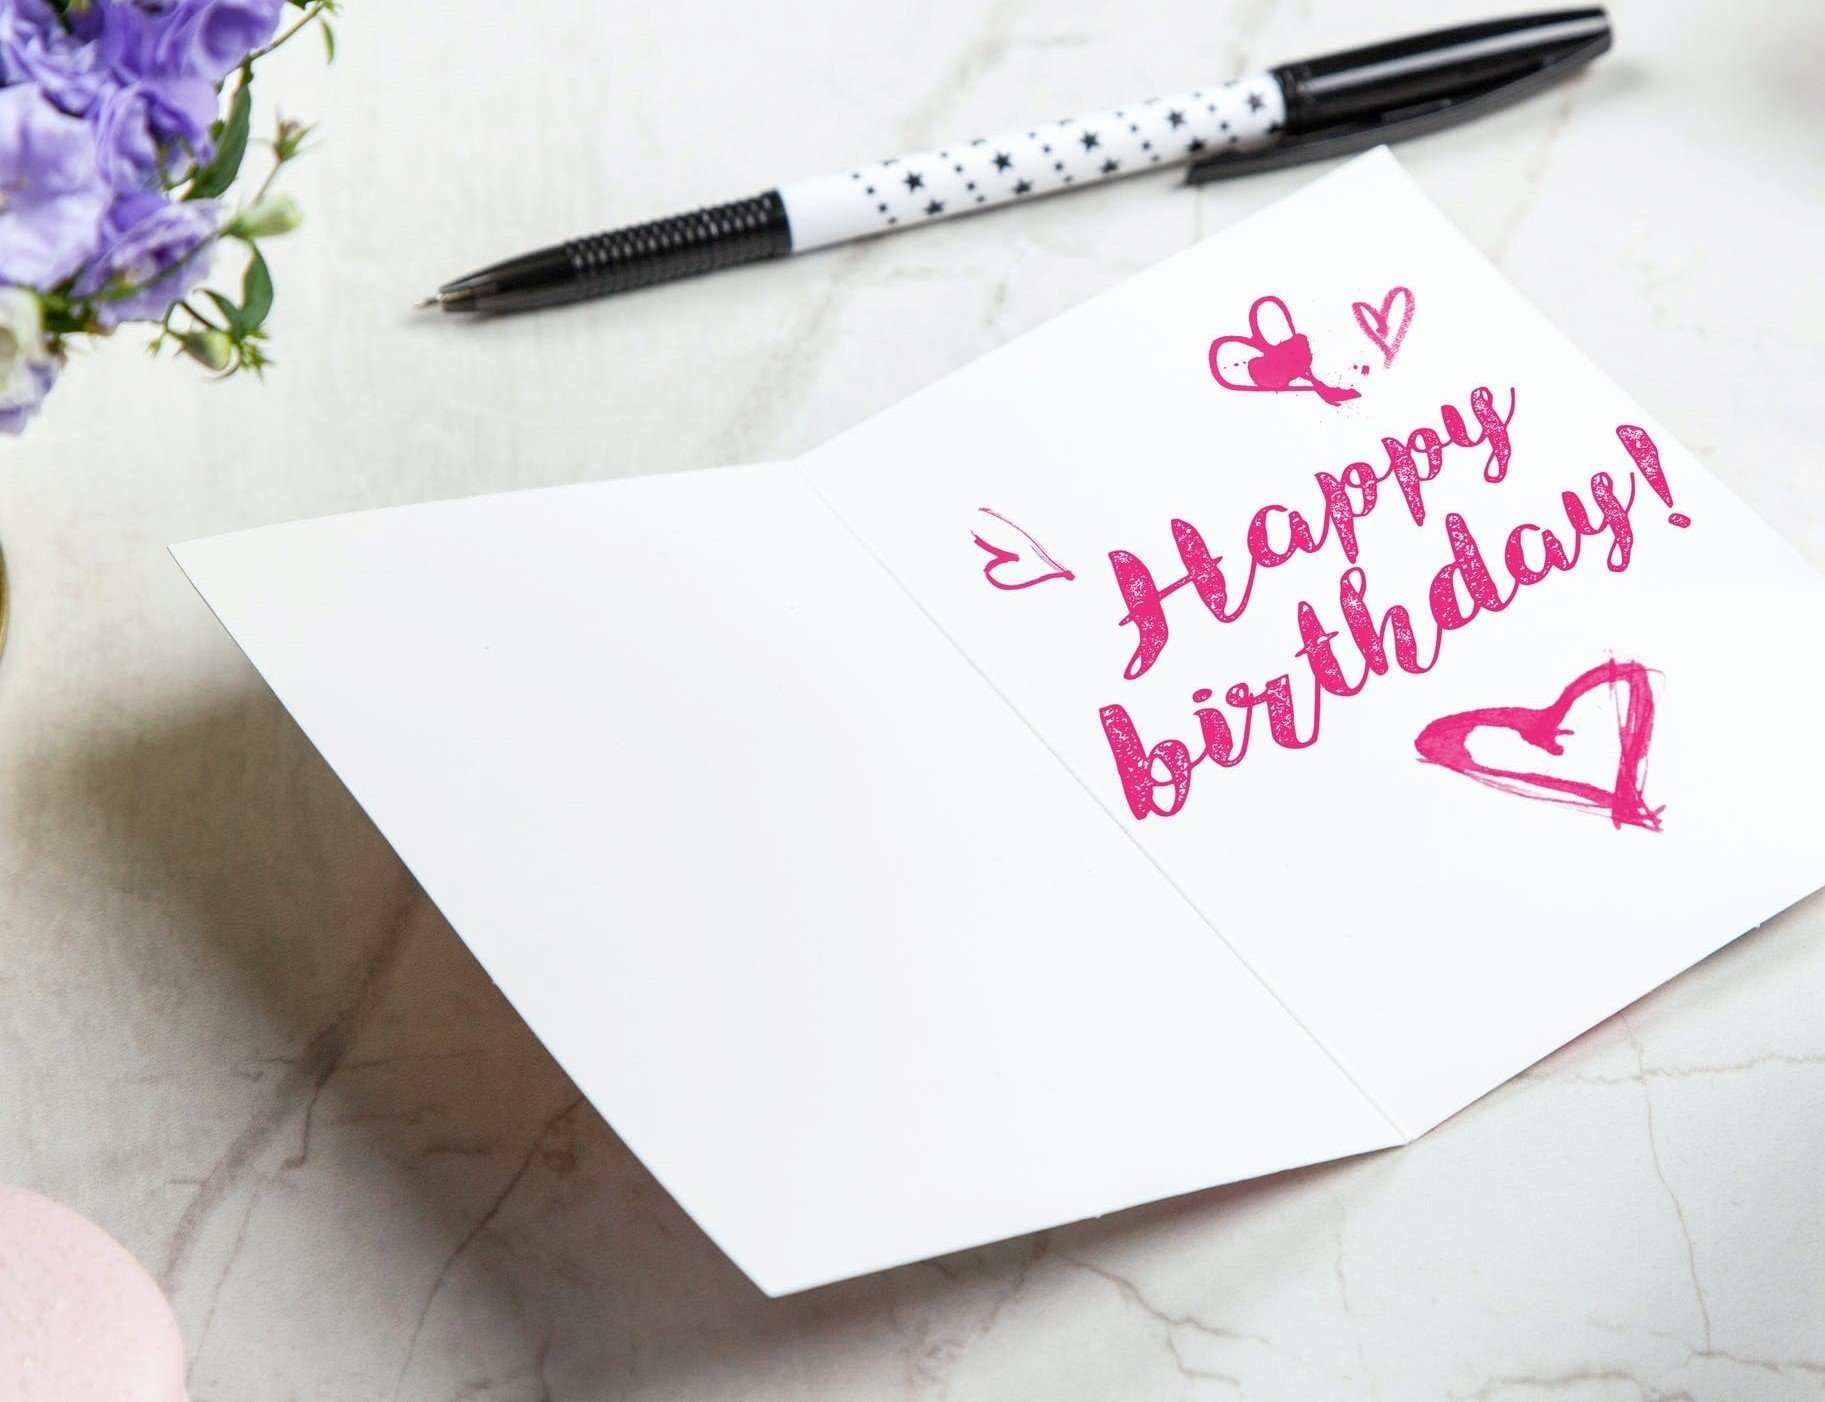 A birthday card to send to Heaven   Source: Pexels